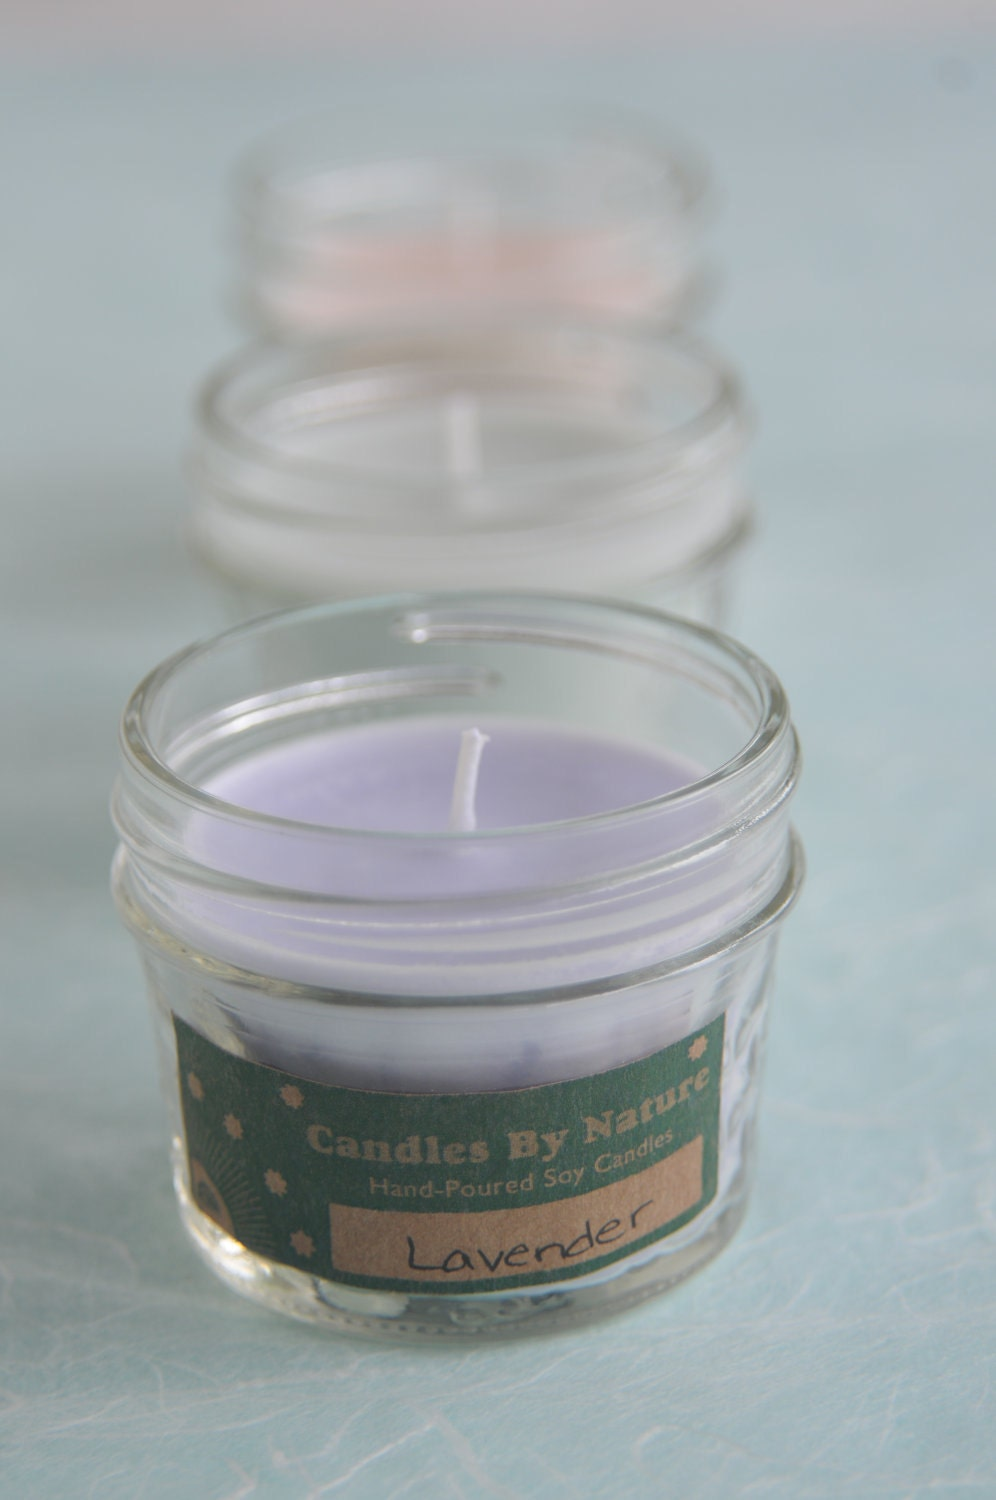 LAVENDER Handcrafted Soy Candle (4 oz.)